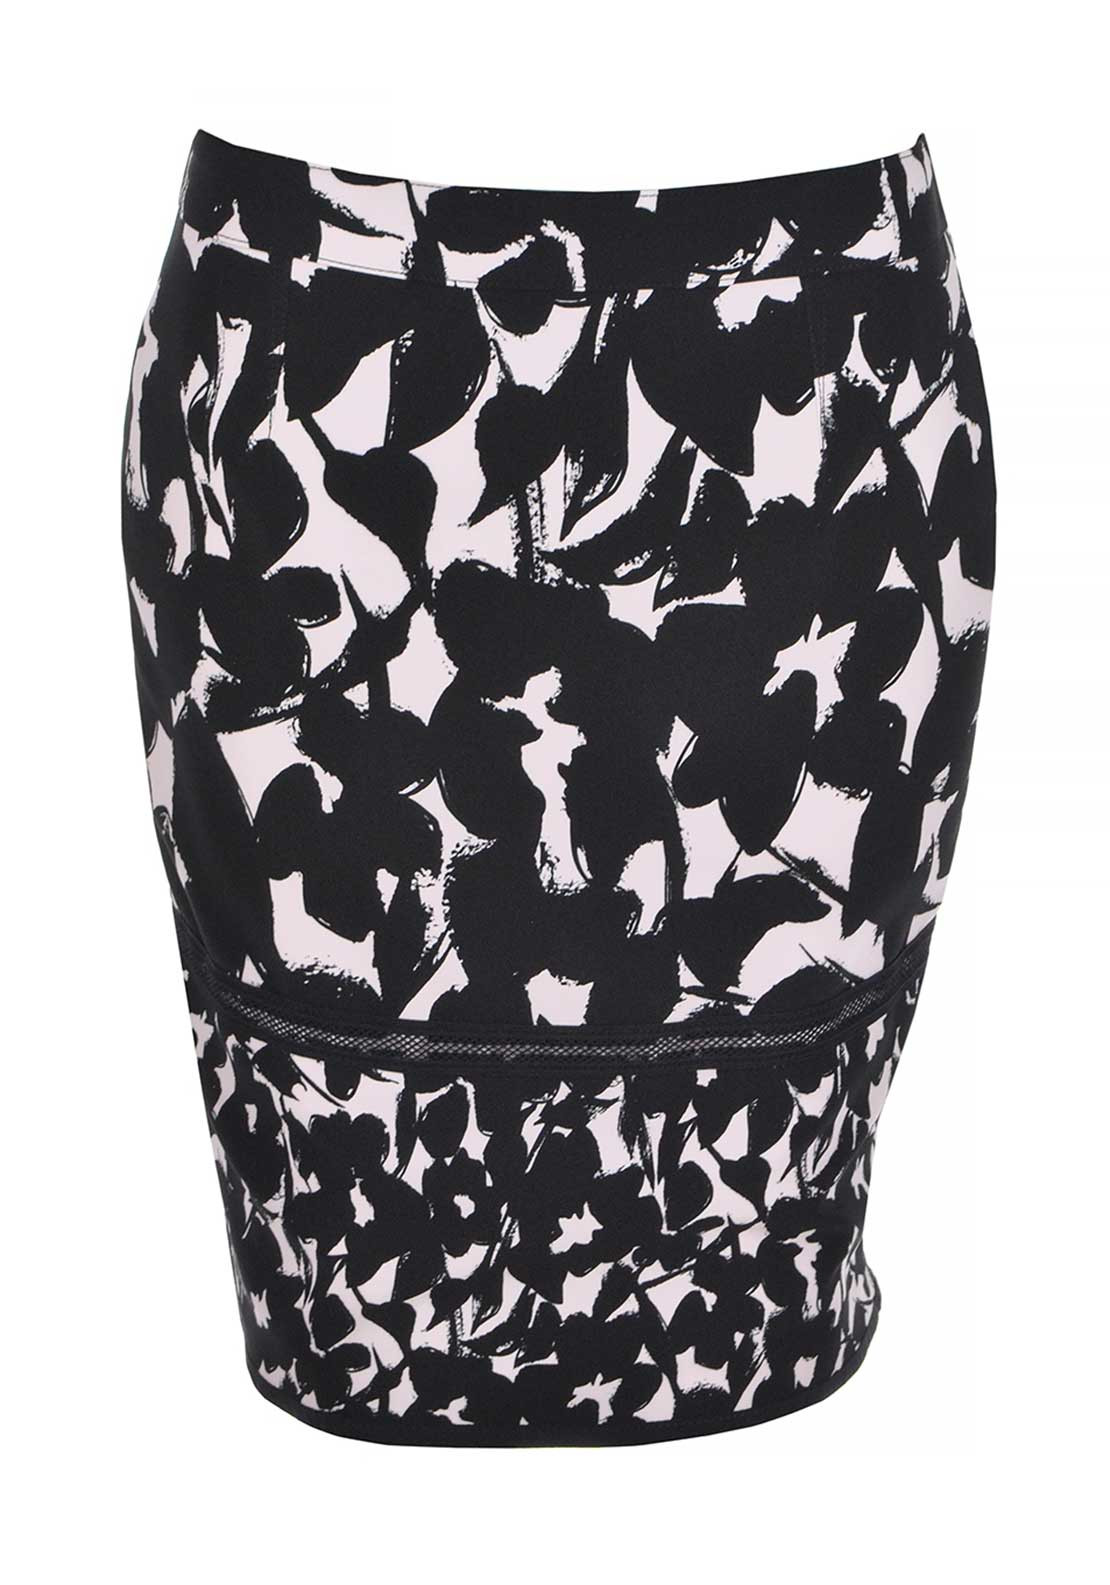 Apanage Abstract Floral Print Reversible Pencil Skirt, Black and Pink